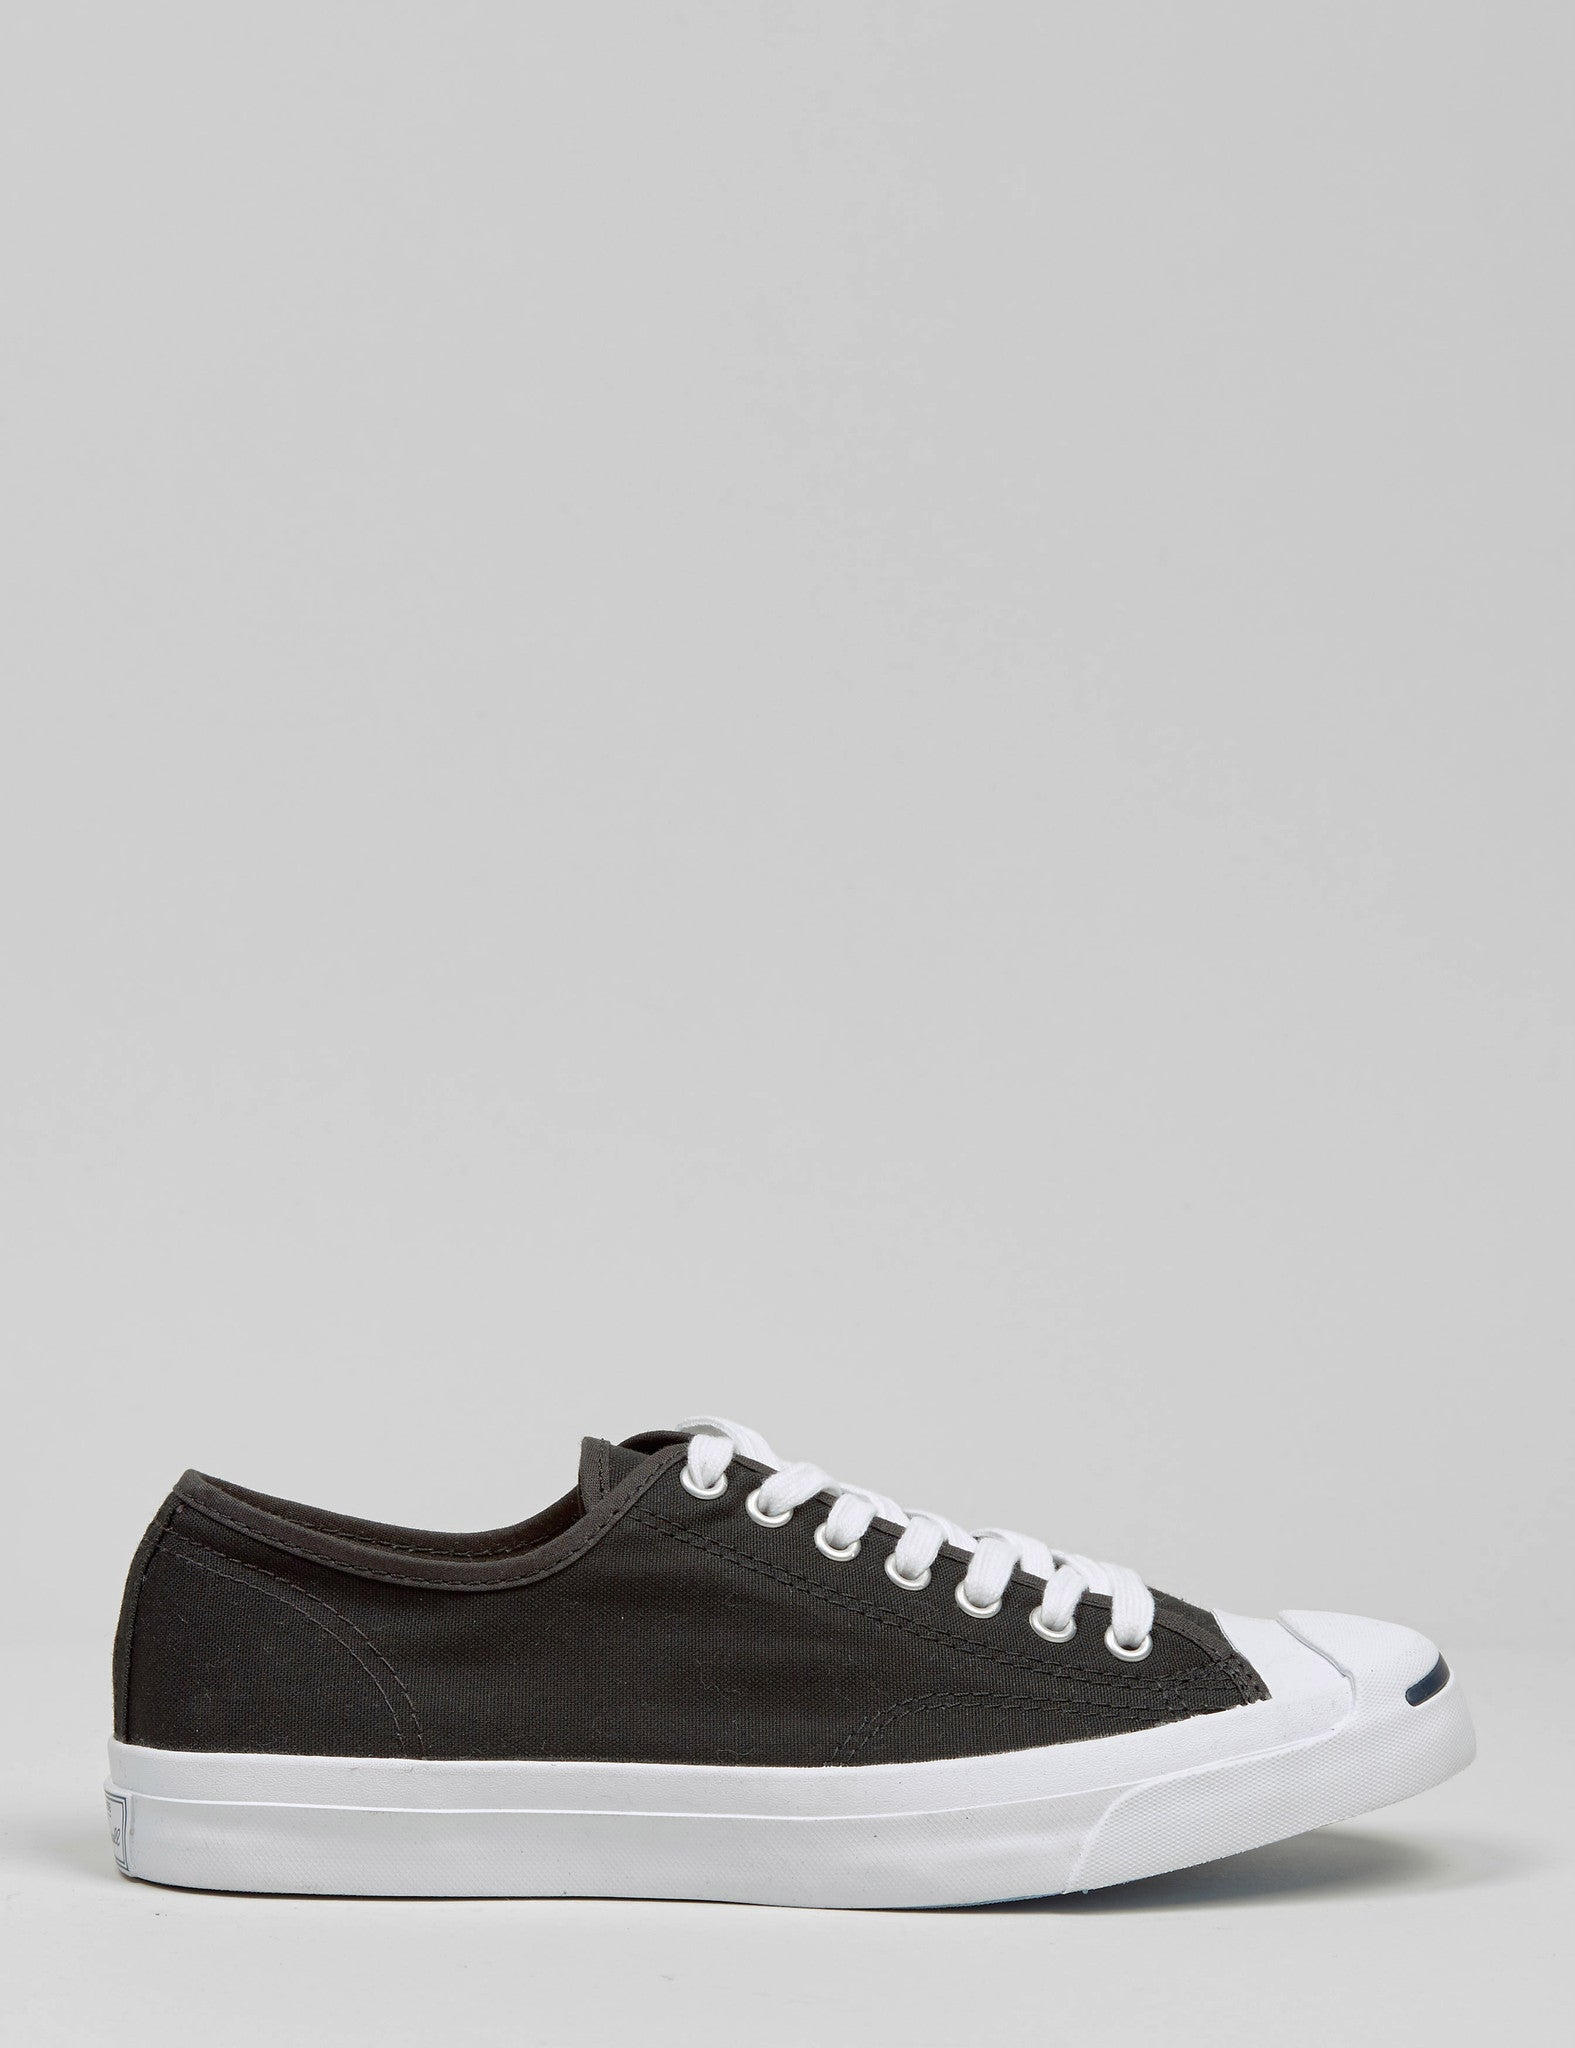 Converse Jack Purcell Canvas - Black/White